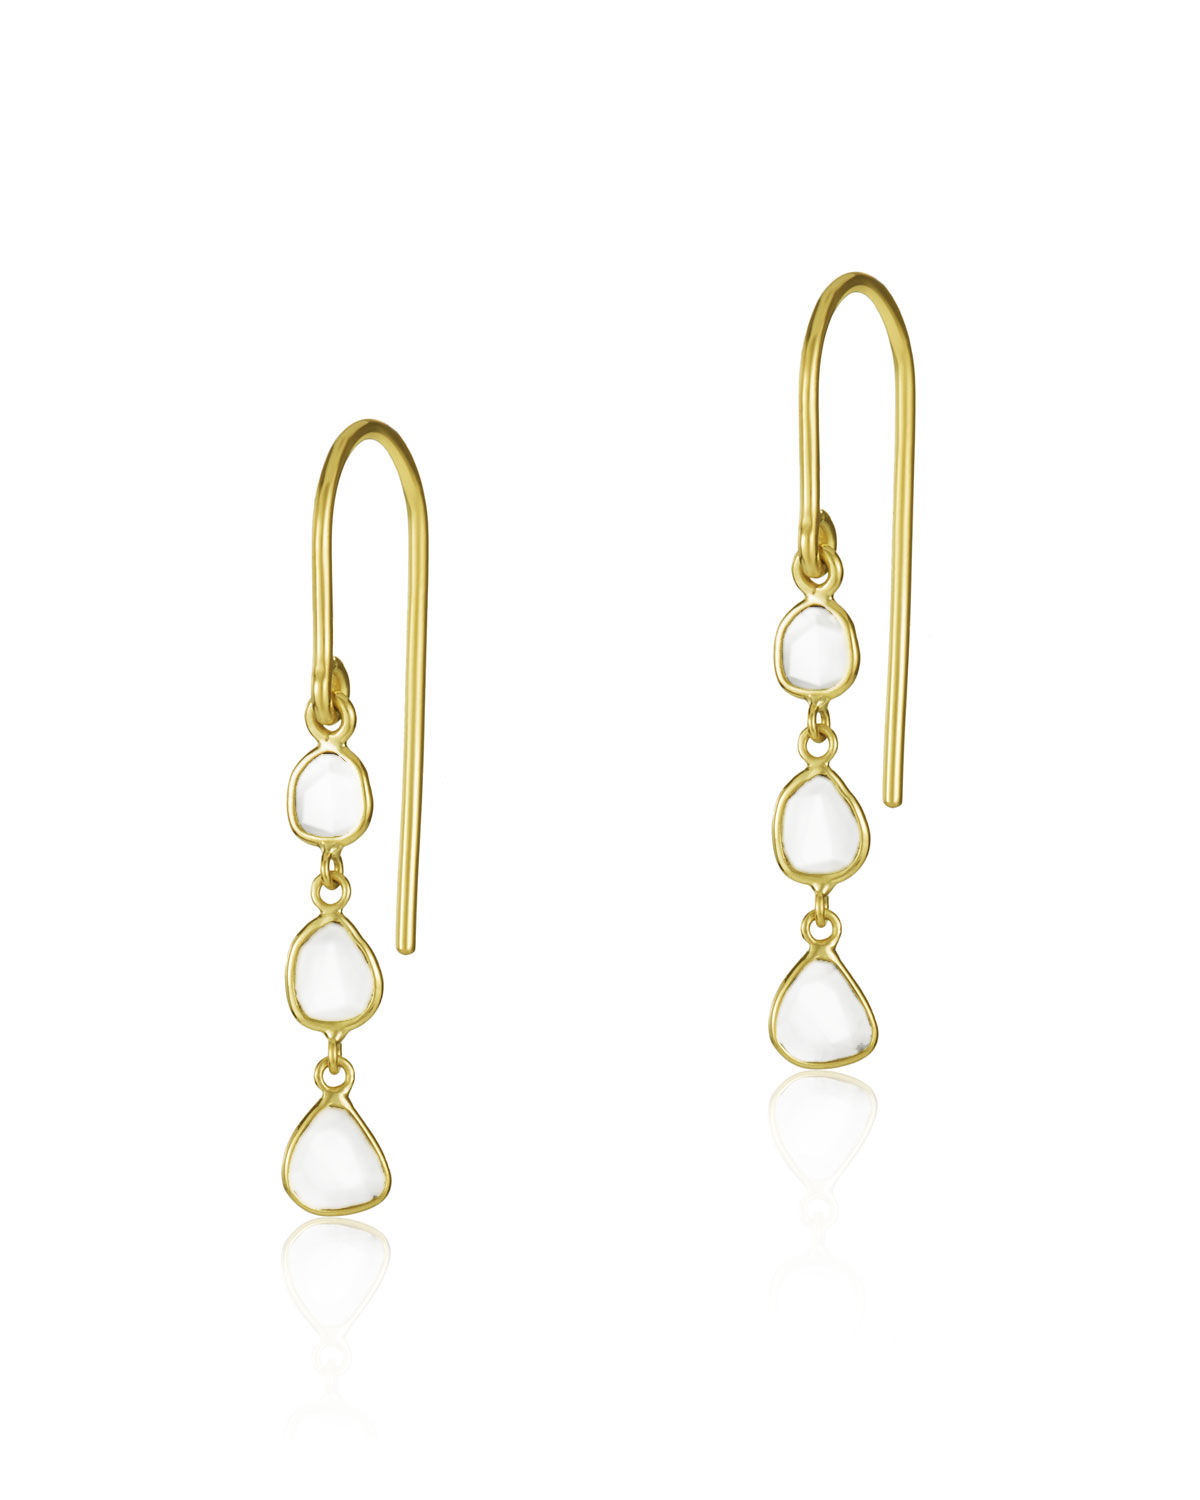 LEGEND AMRAPALI Polki Diamond Slice Mini Drop Earrings